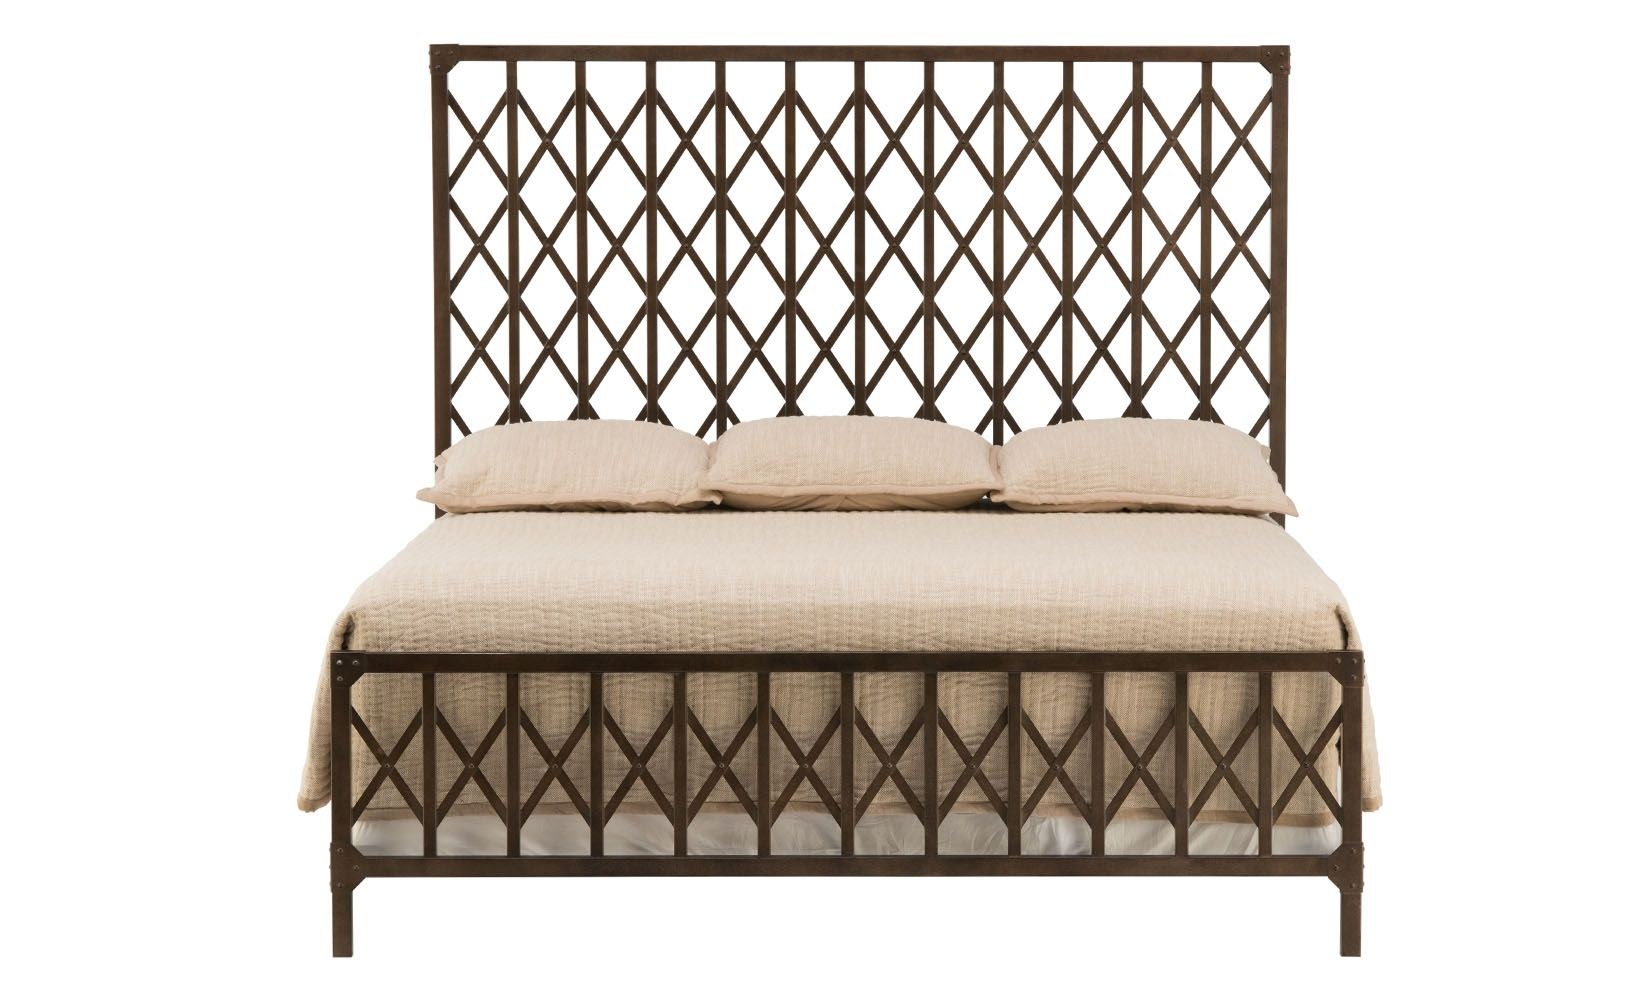 Metalworks King Metal Bed | Arquitectura